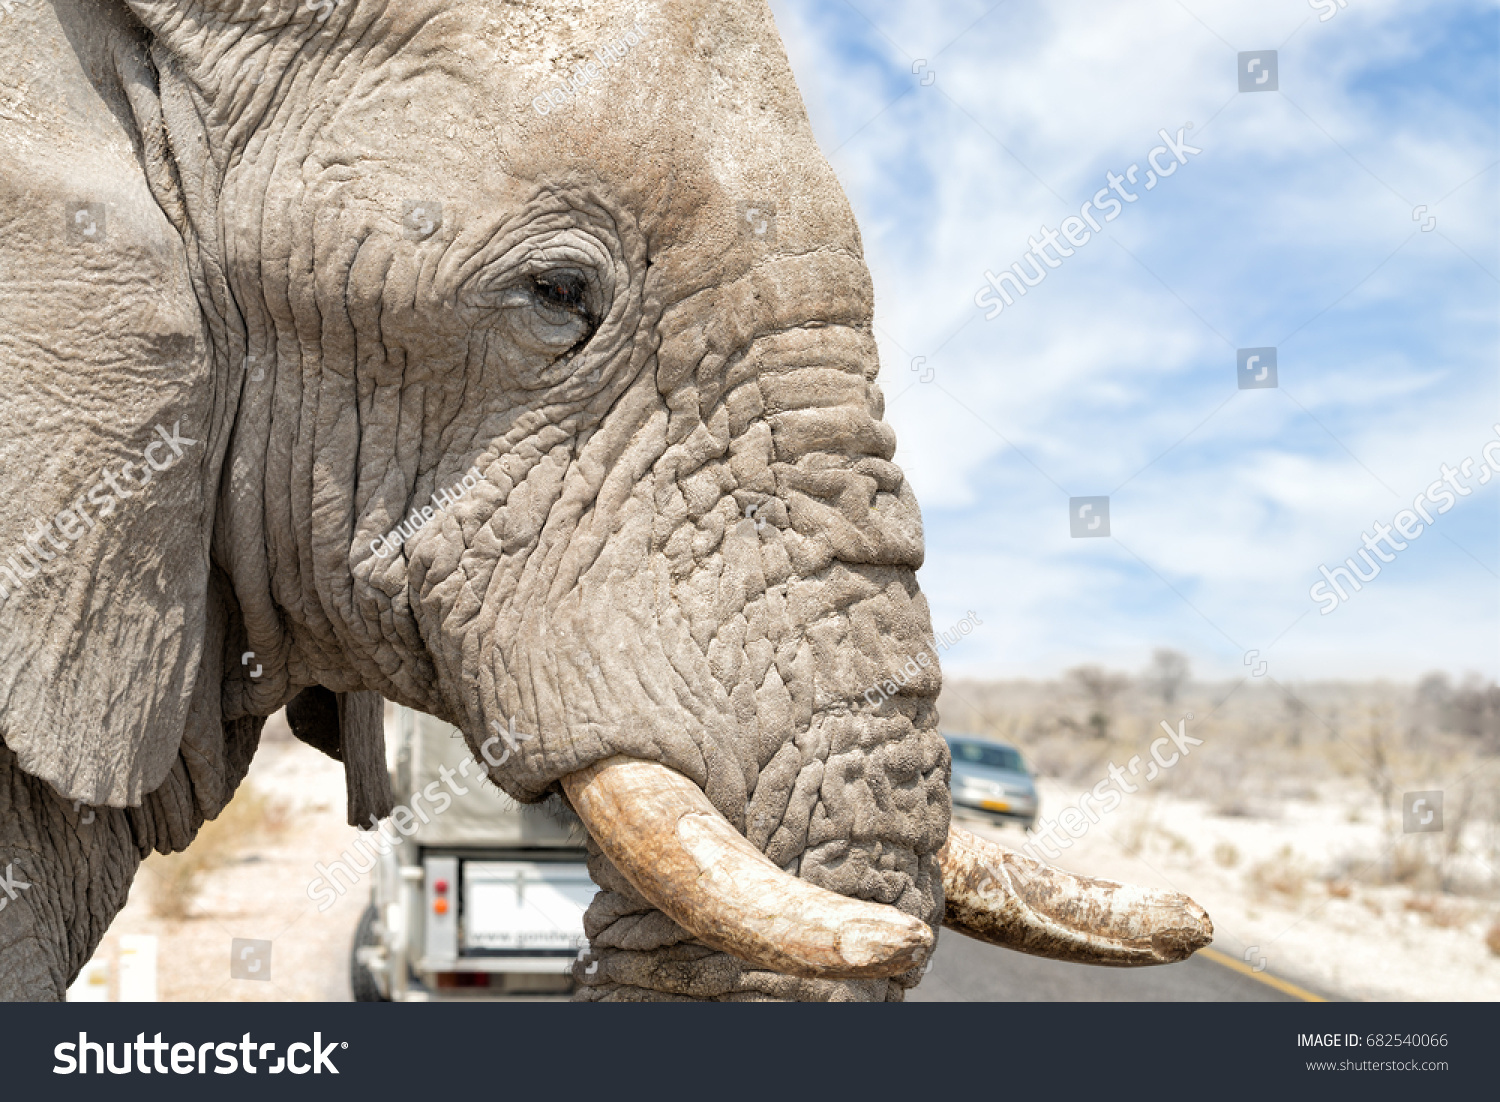 Close-up of large elephant (Loxodonta africana) crossing the road in between our vehicle and another one in front, Etosha National Park, Namibia. Shallow DOF.